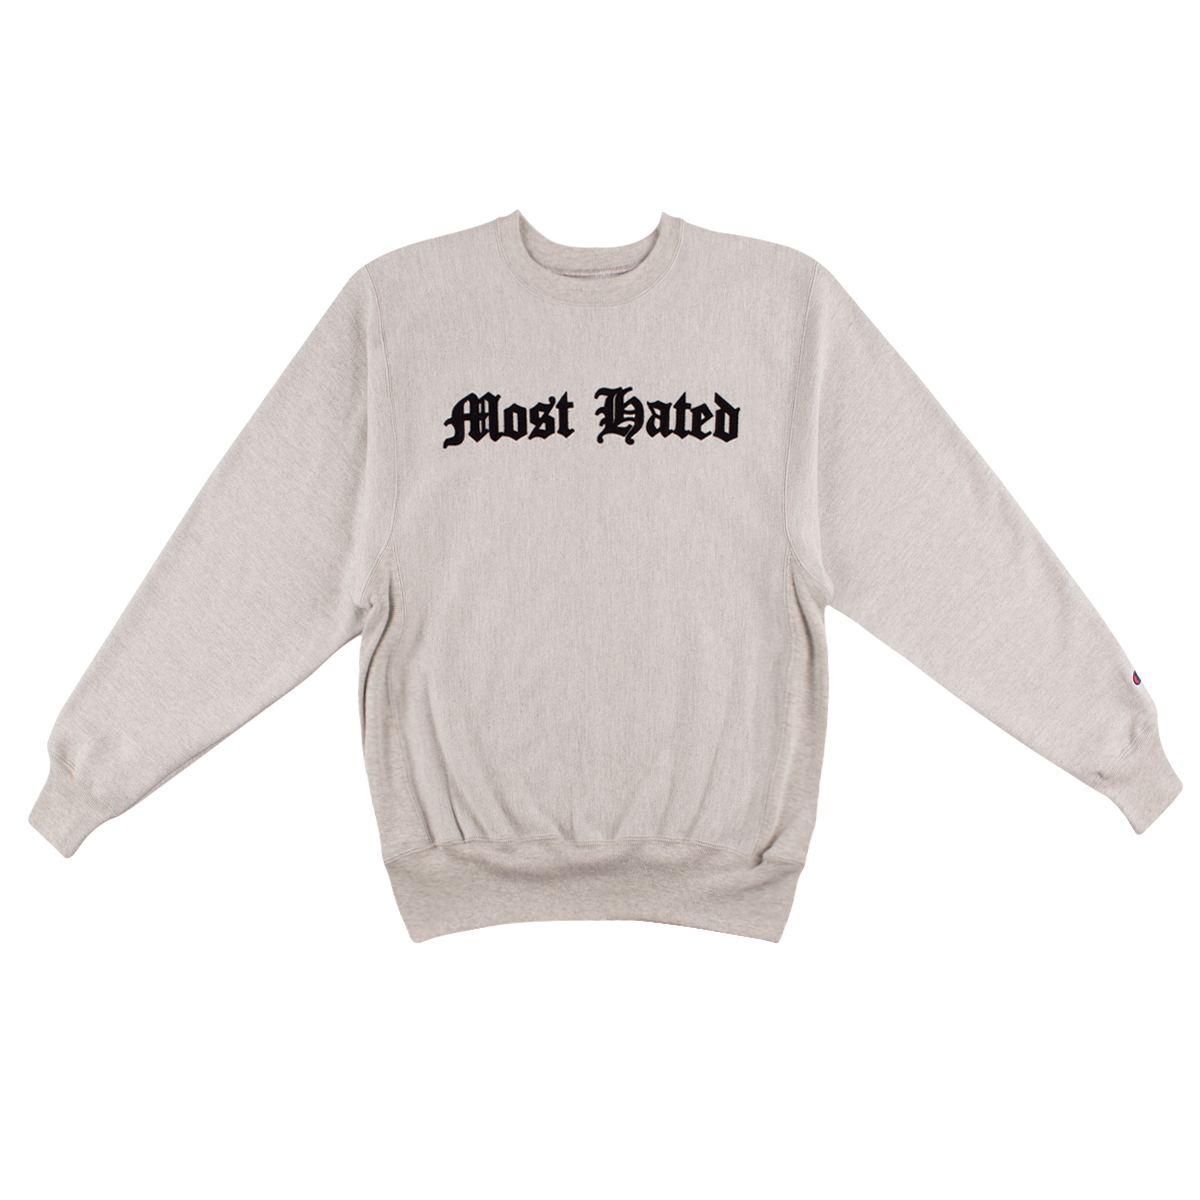 Most Hated Champion Reverse-weave Sweatshirt - Grey